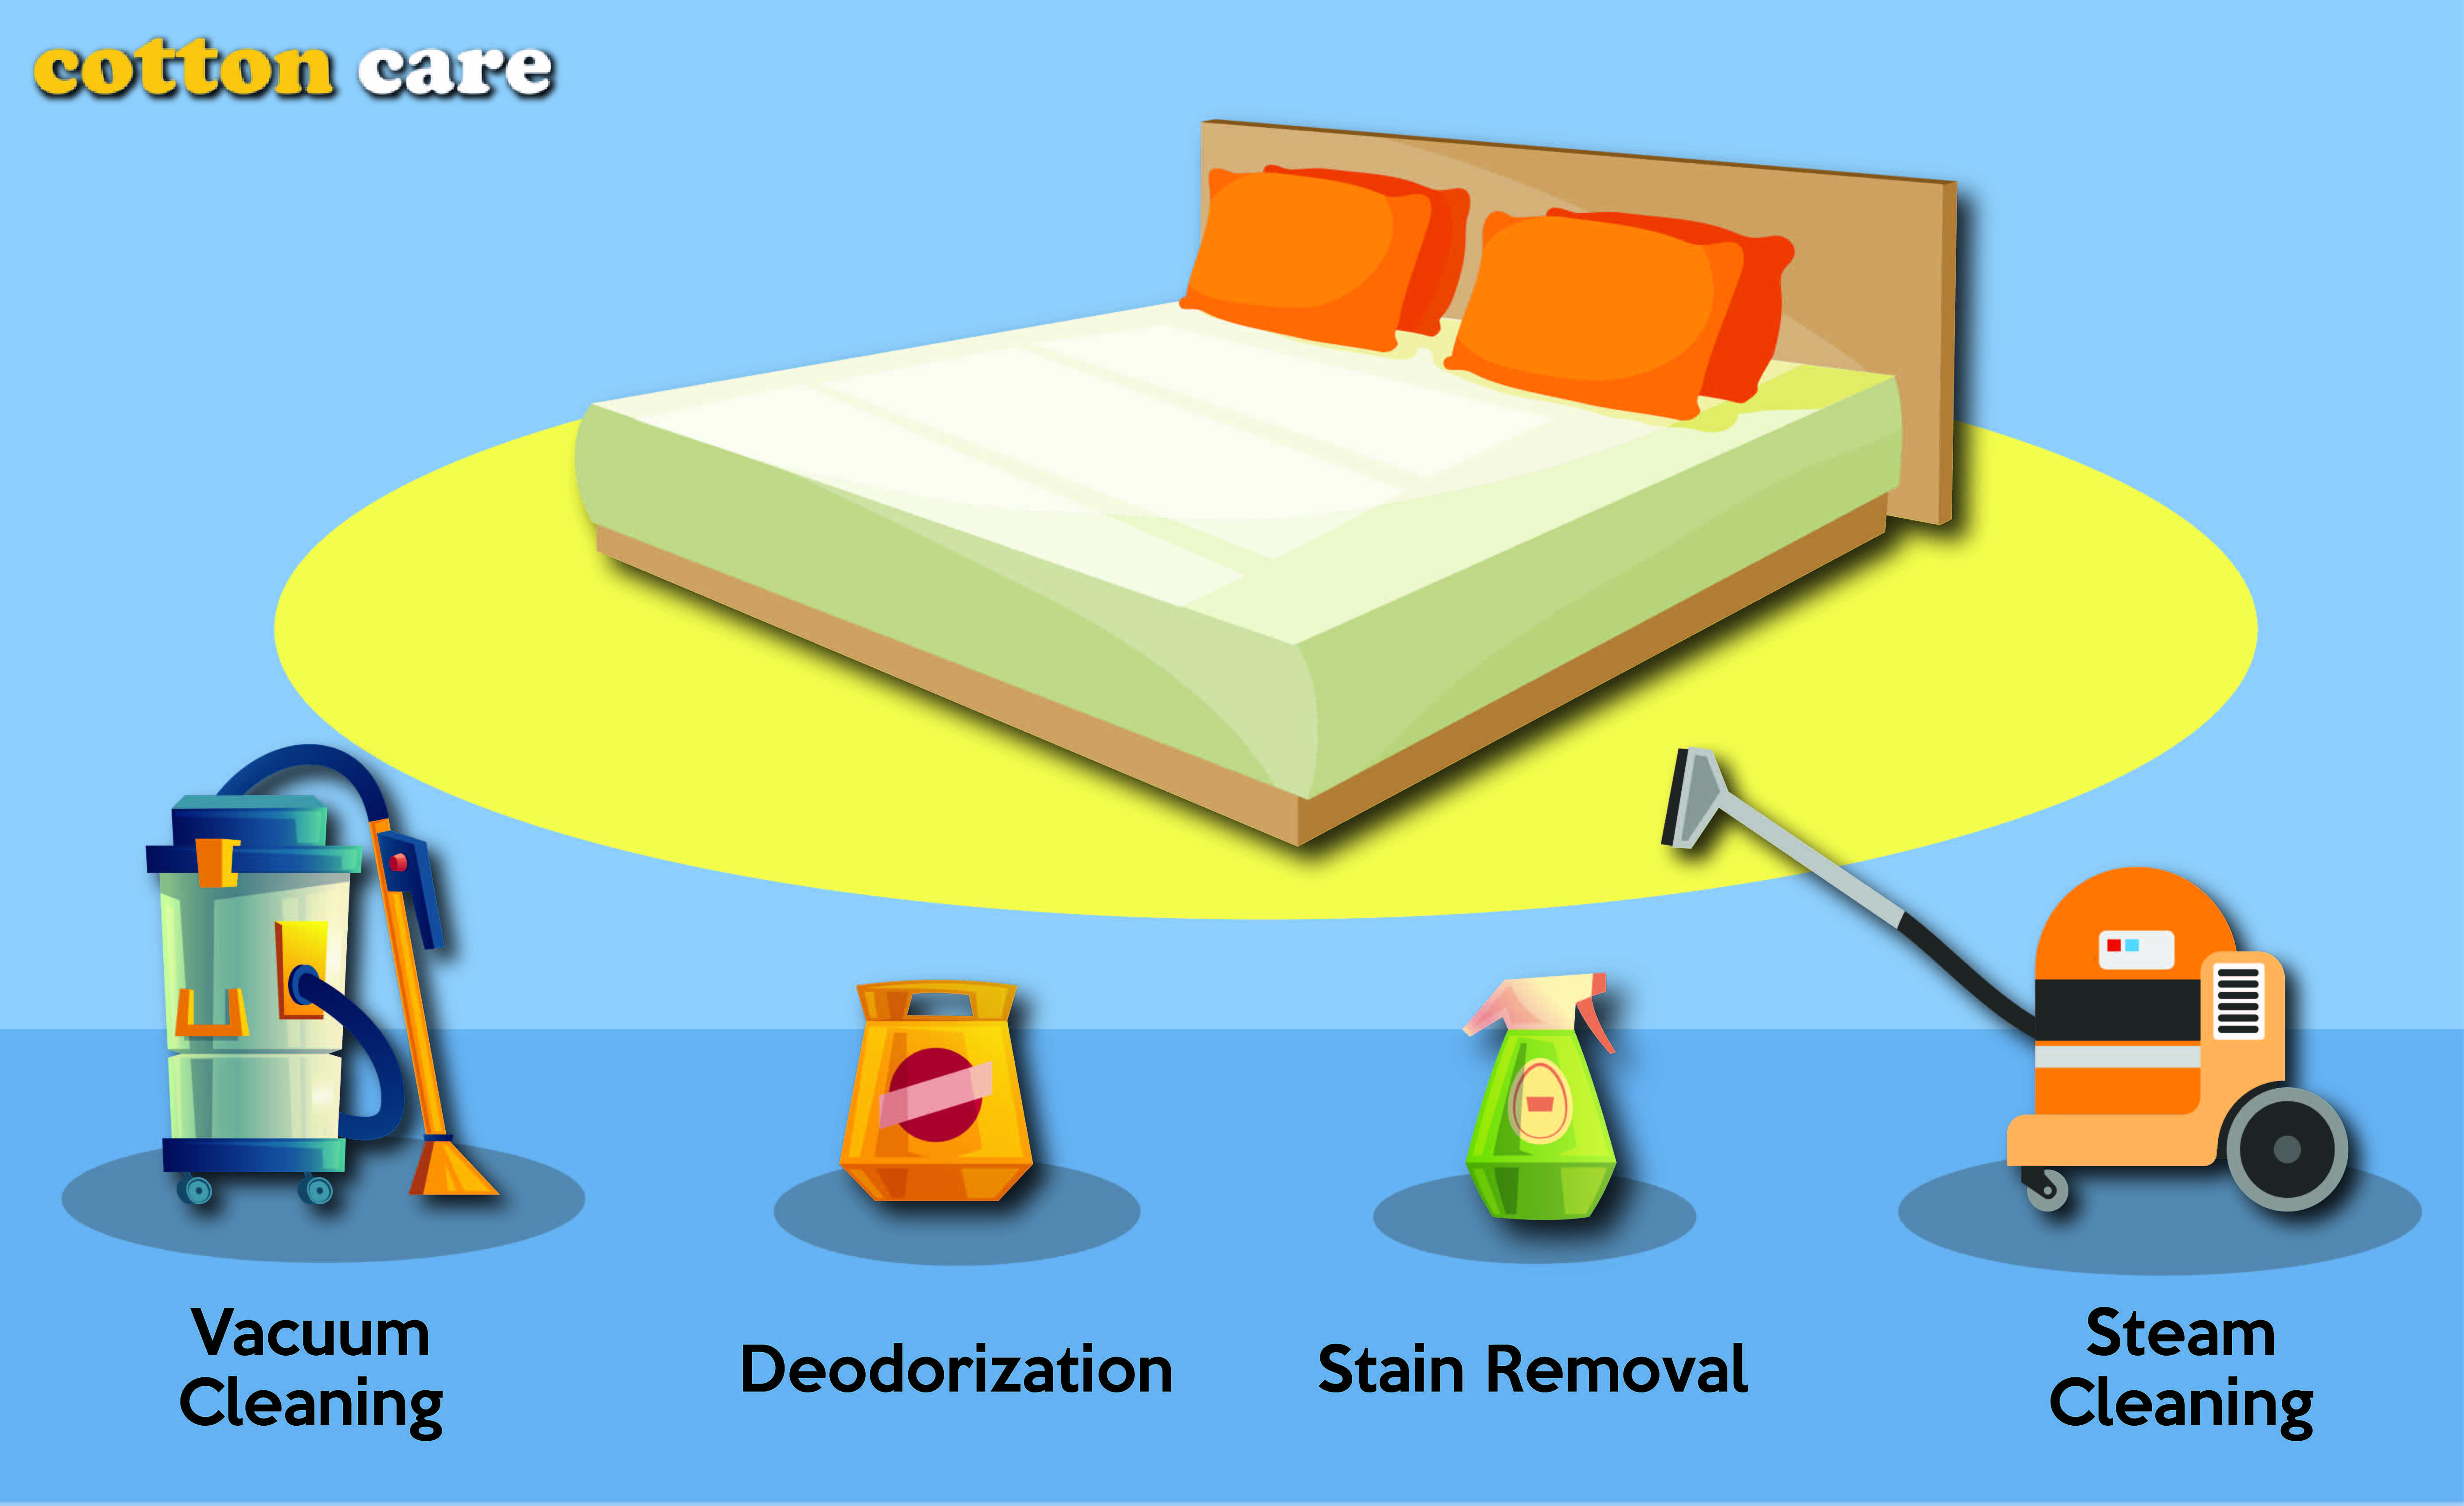 Choosing the best Mattress Cleaning Services can be tough